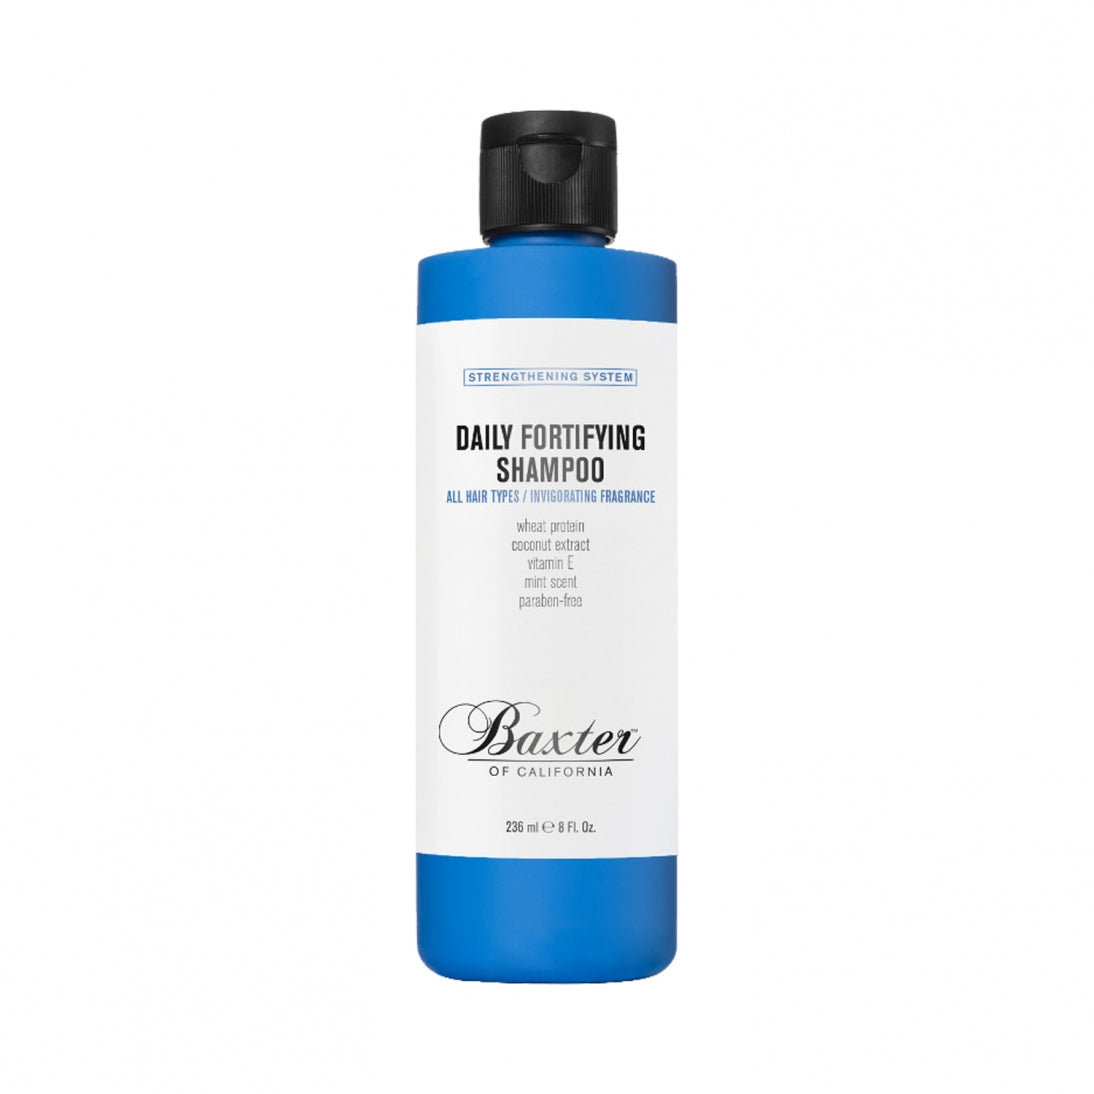 BAXTER OF CALIFORNIA - Daily Fortifying Shampoo 236 ml